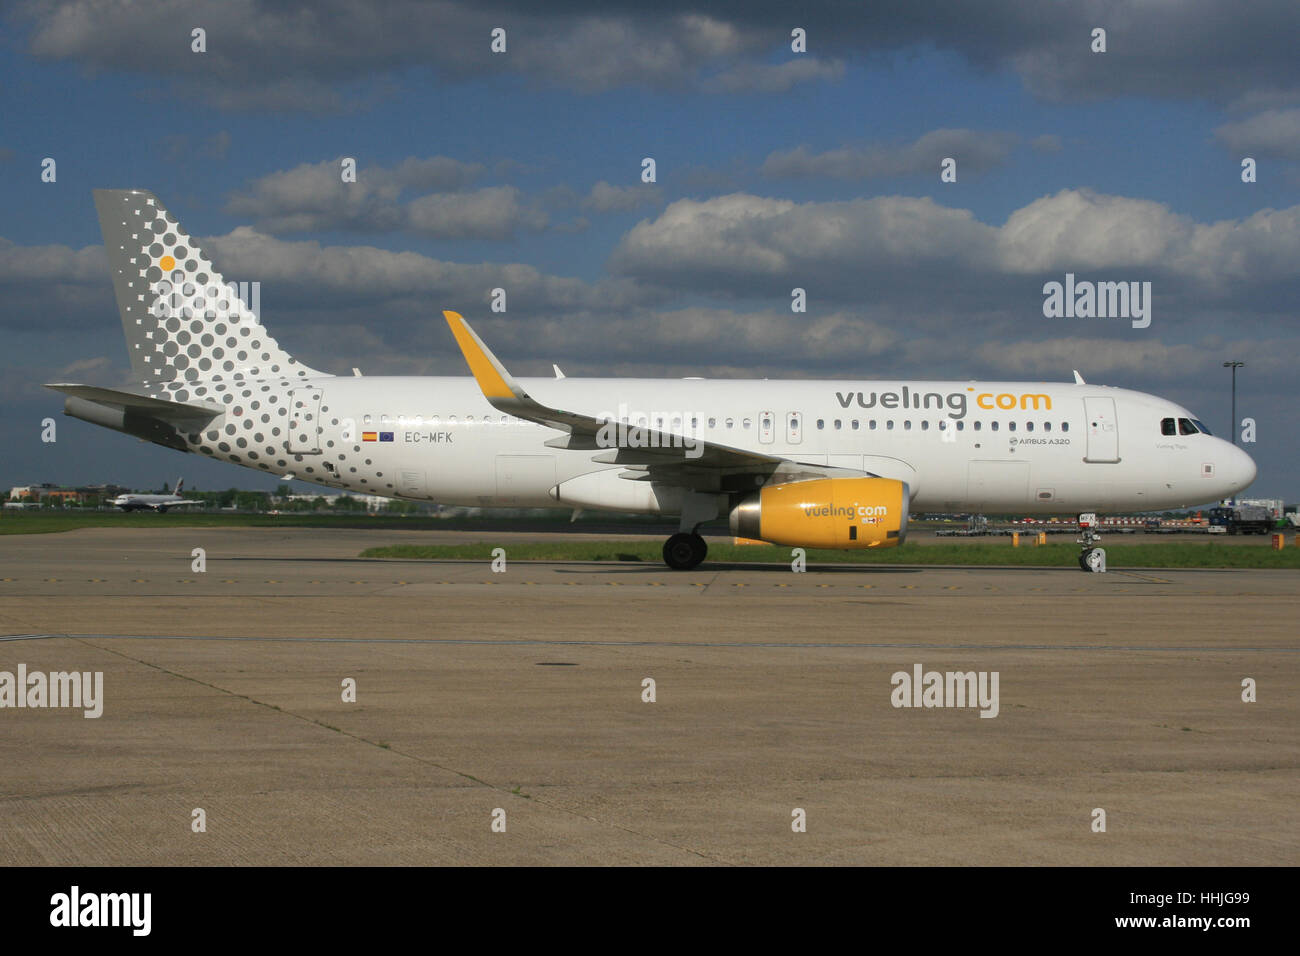 VUELING A320 - Stock Image